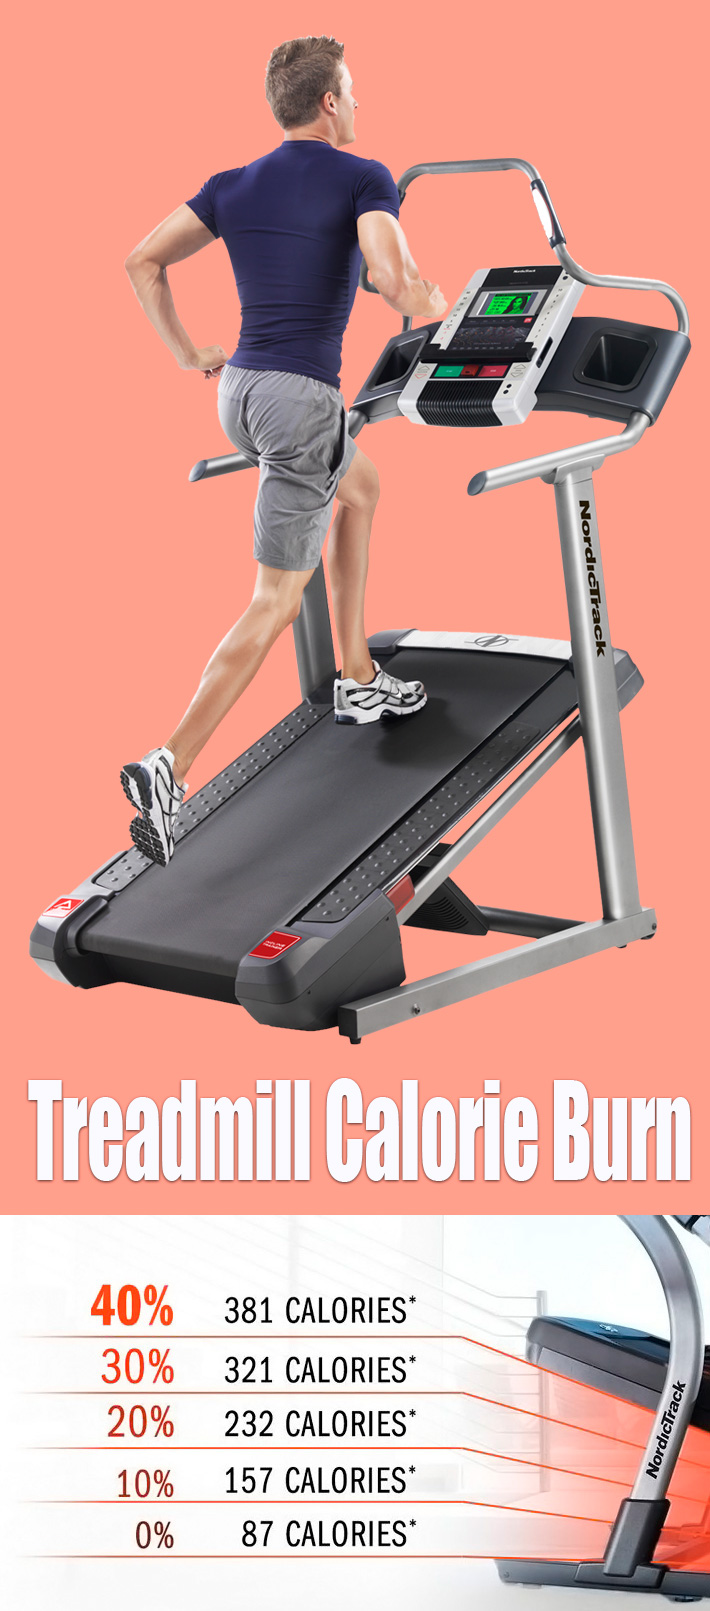 Treadmill Calorie Burn